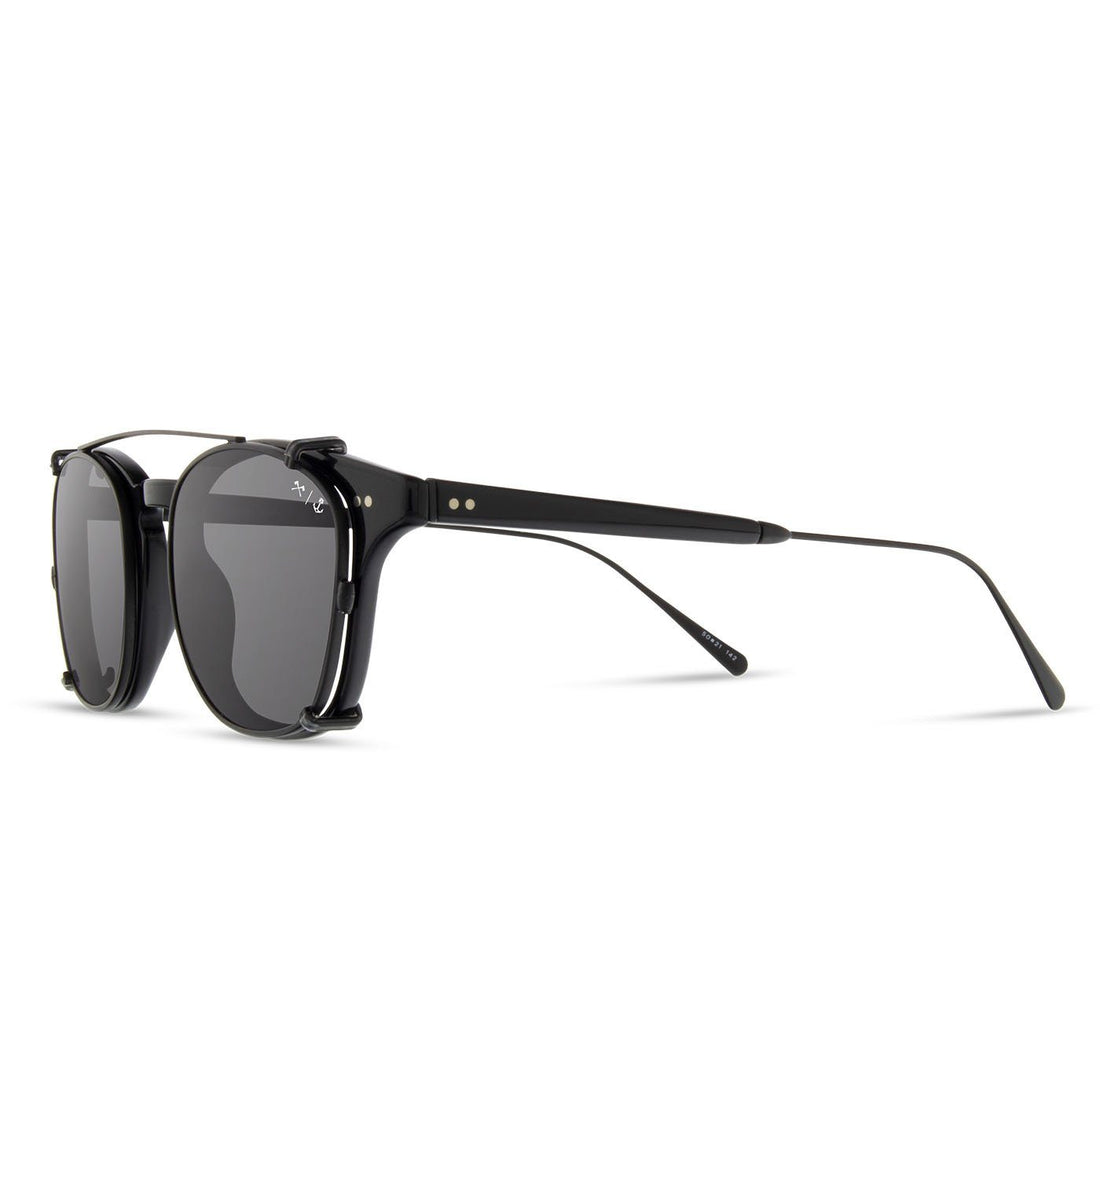 Shwood x Iron & Resin Kennedy City - Black Obsidian with Grey Polarized Lenses - Sunglasses - Iron and Resin